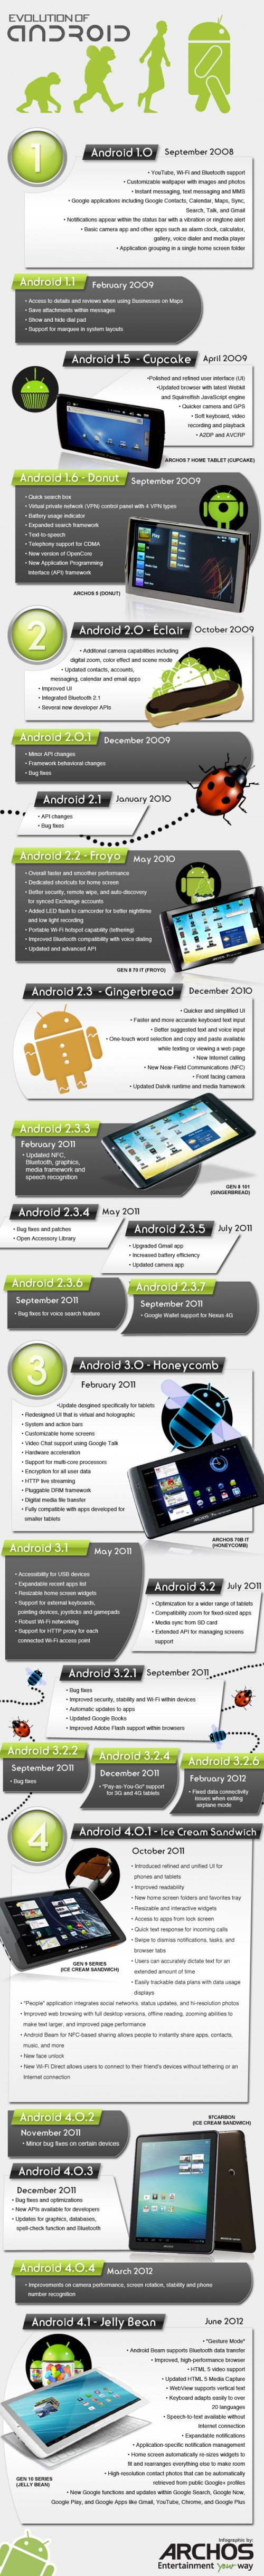 evolution-of-android.jpg